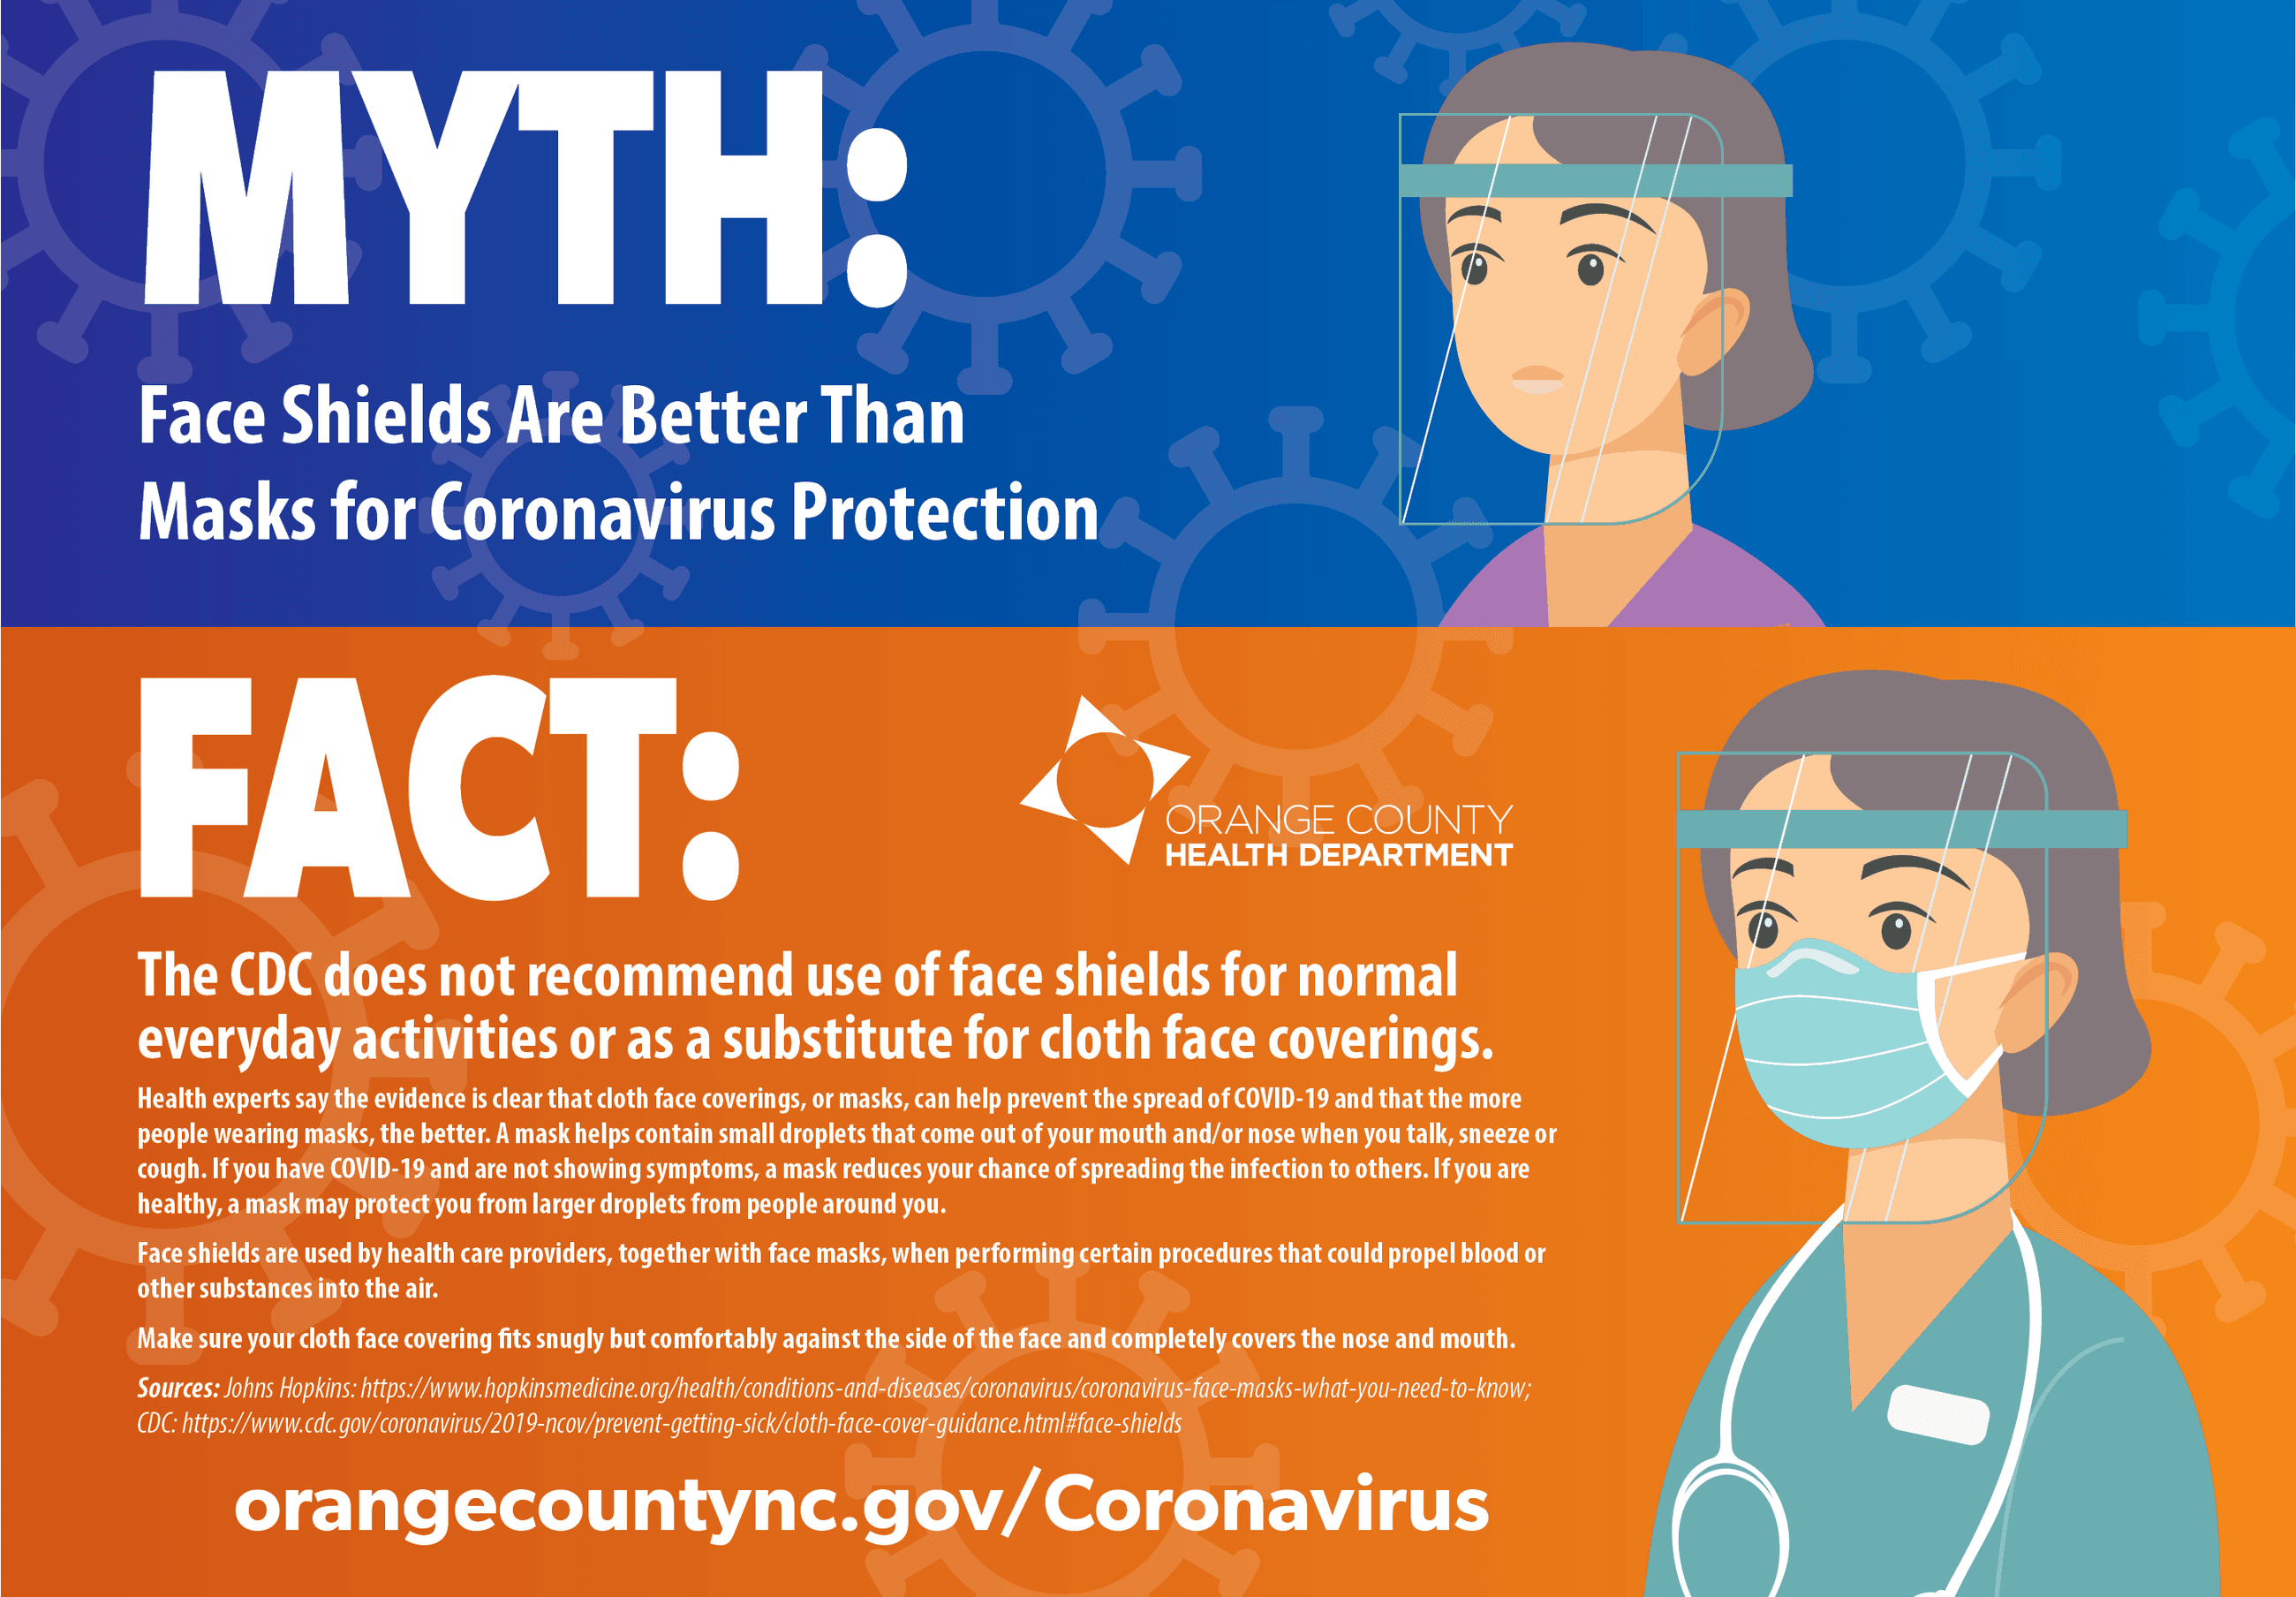 Myths and facts - faceshield